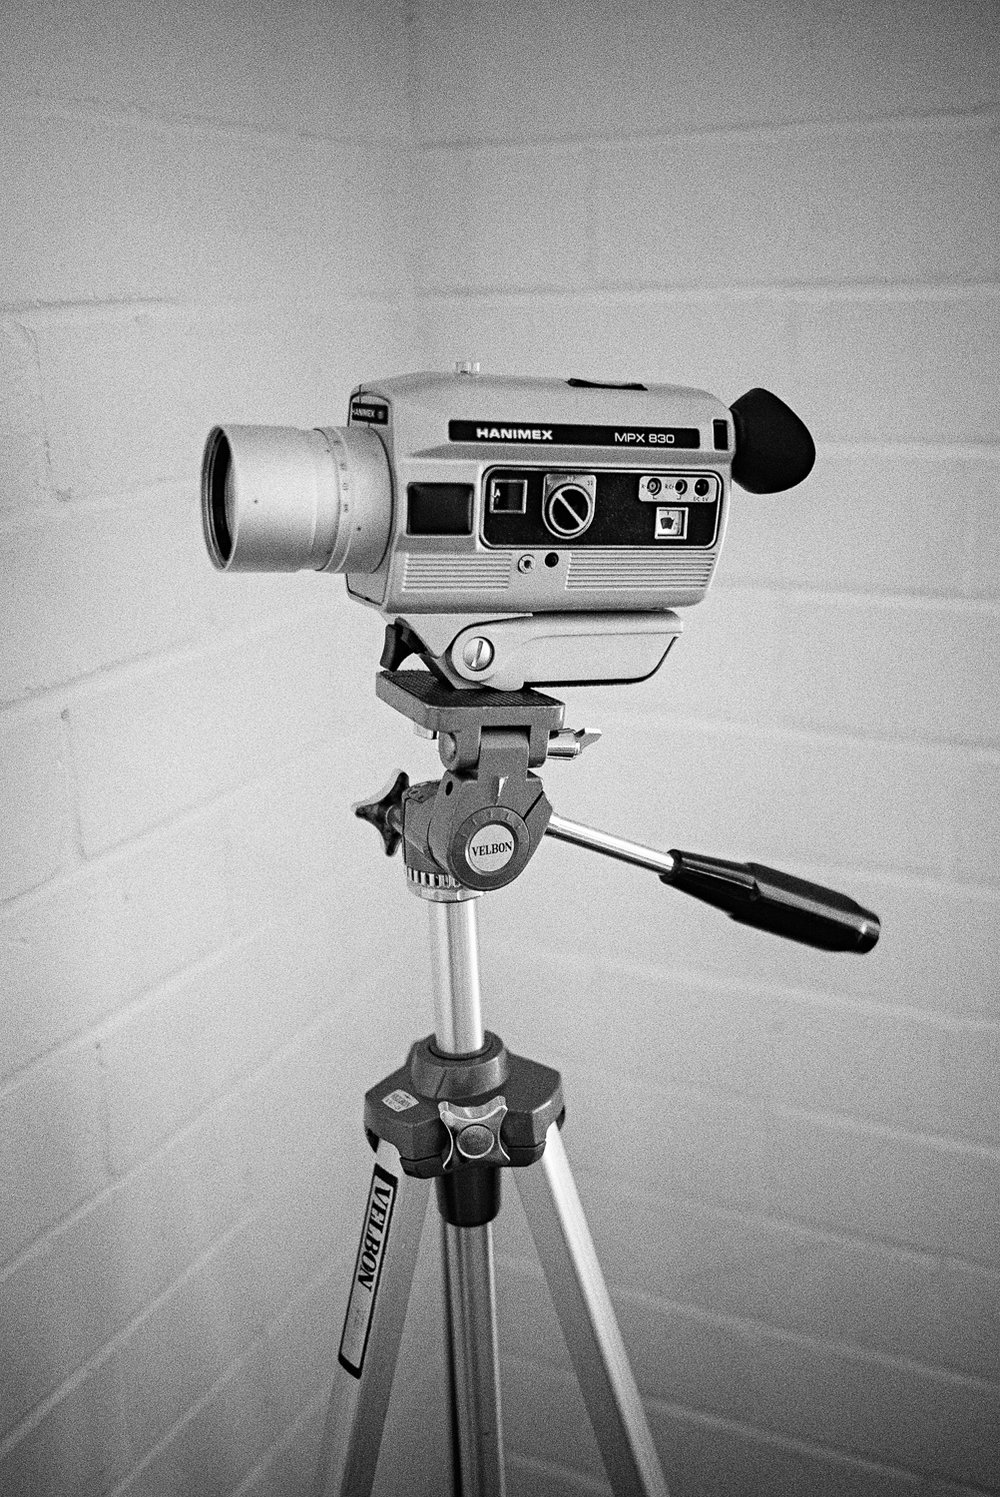 Tyler's Hanimex 8mm motion picture film camera.